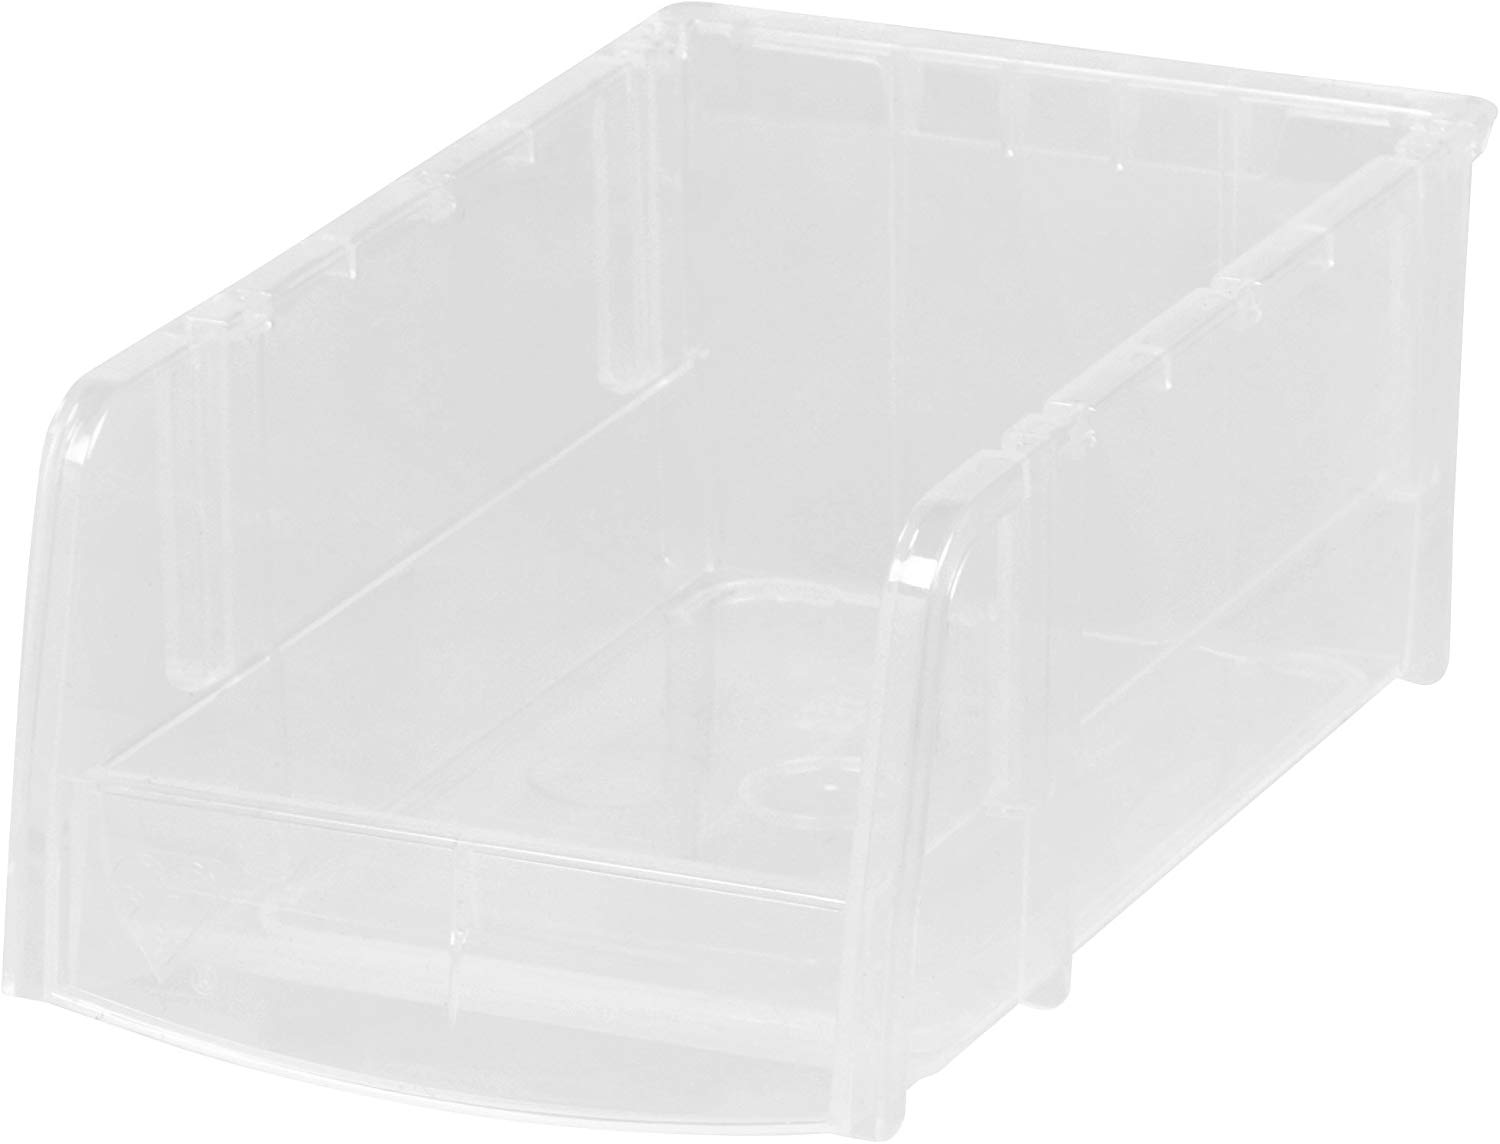 7.5 x 4.5 x 3 inches IP Clear Stacking Bin